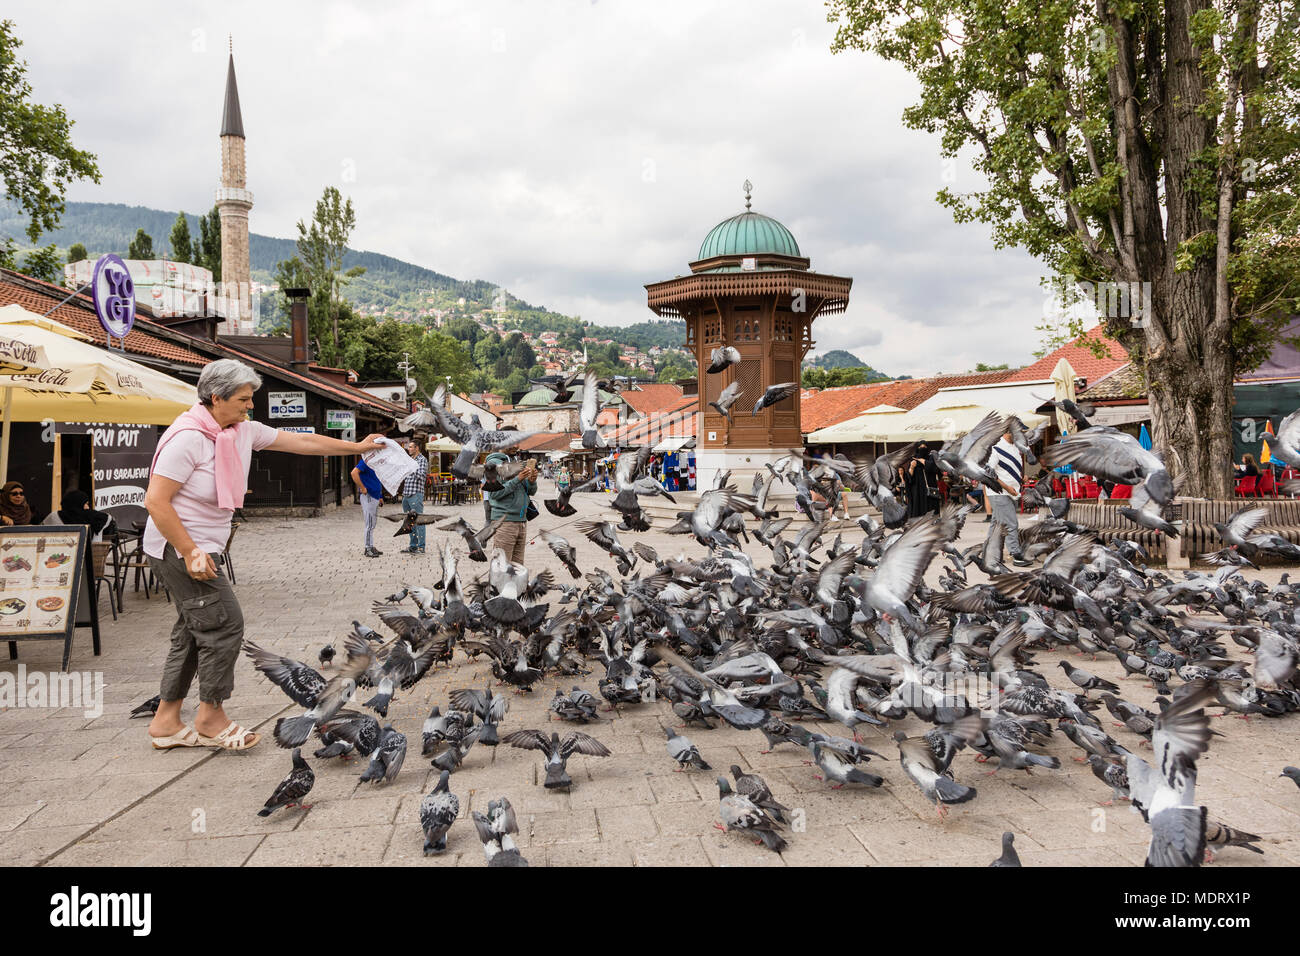 Sarajevo, Bosnia-Herzegovina, July 16 2017: Woman feeds pigeons in front of the Sebilj fountain in historical city center - Stock Image